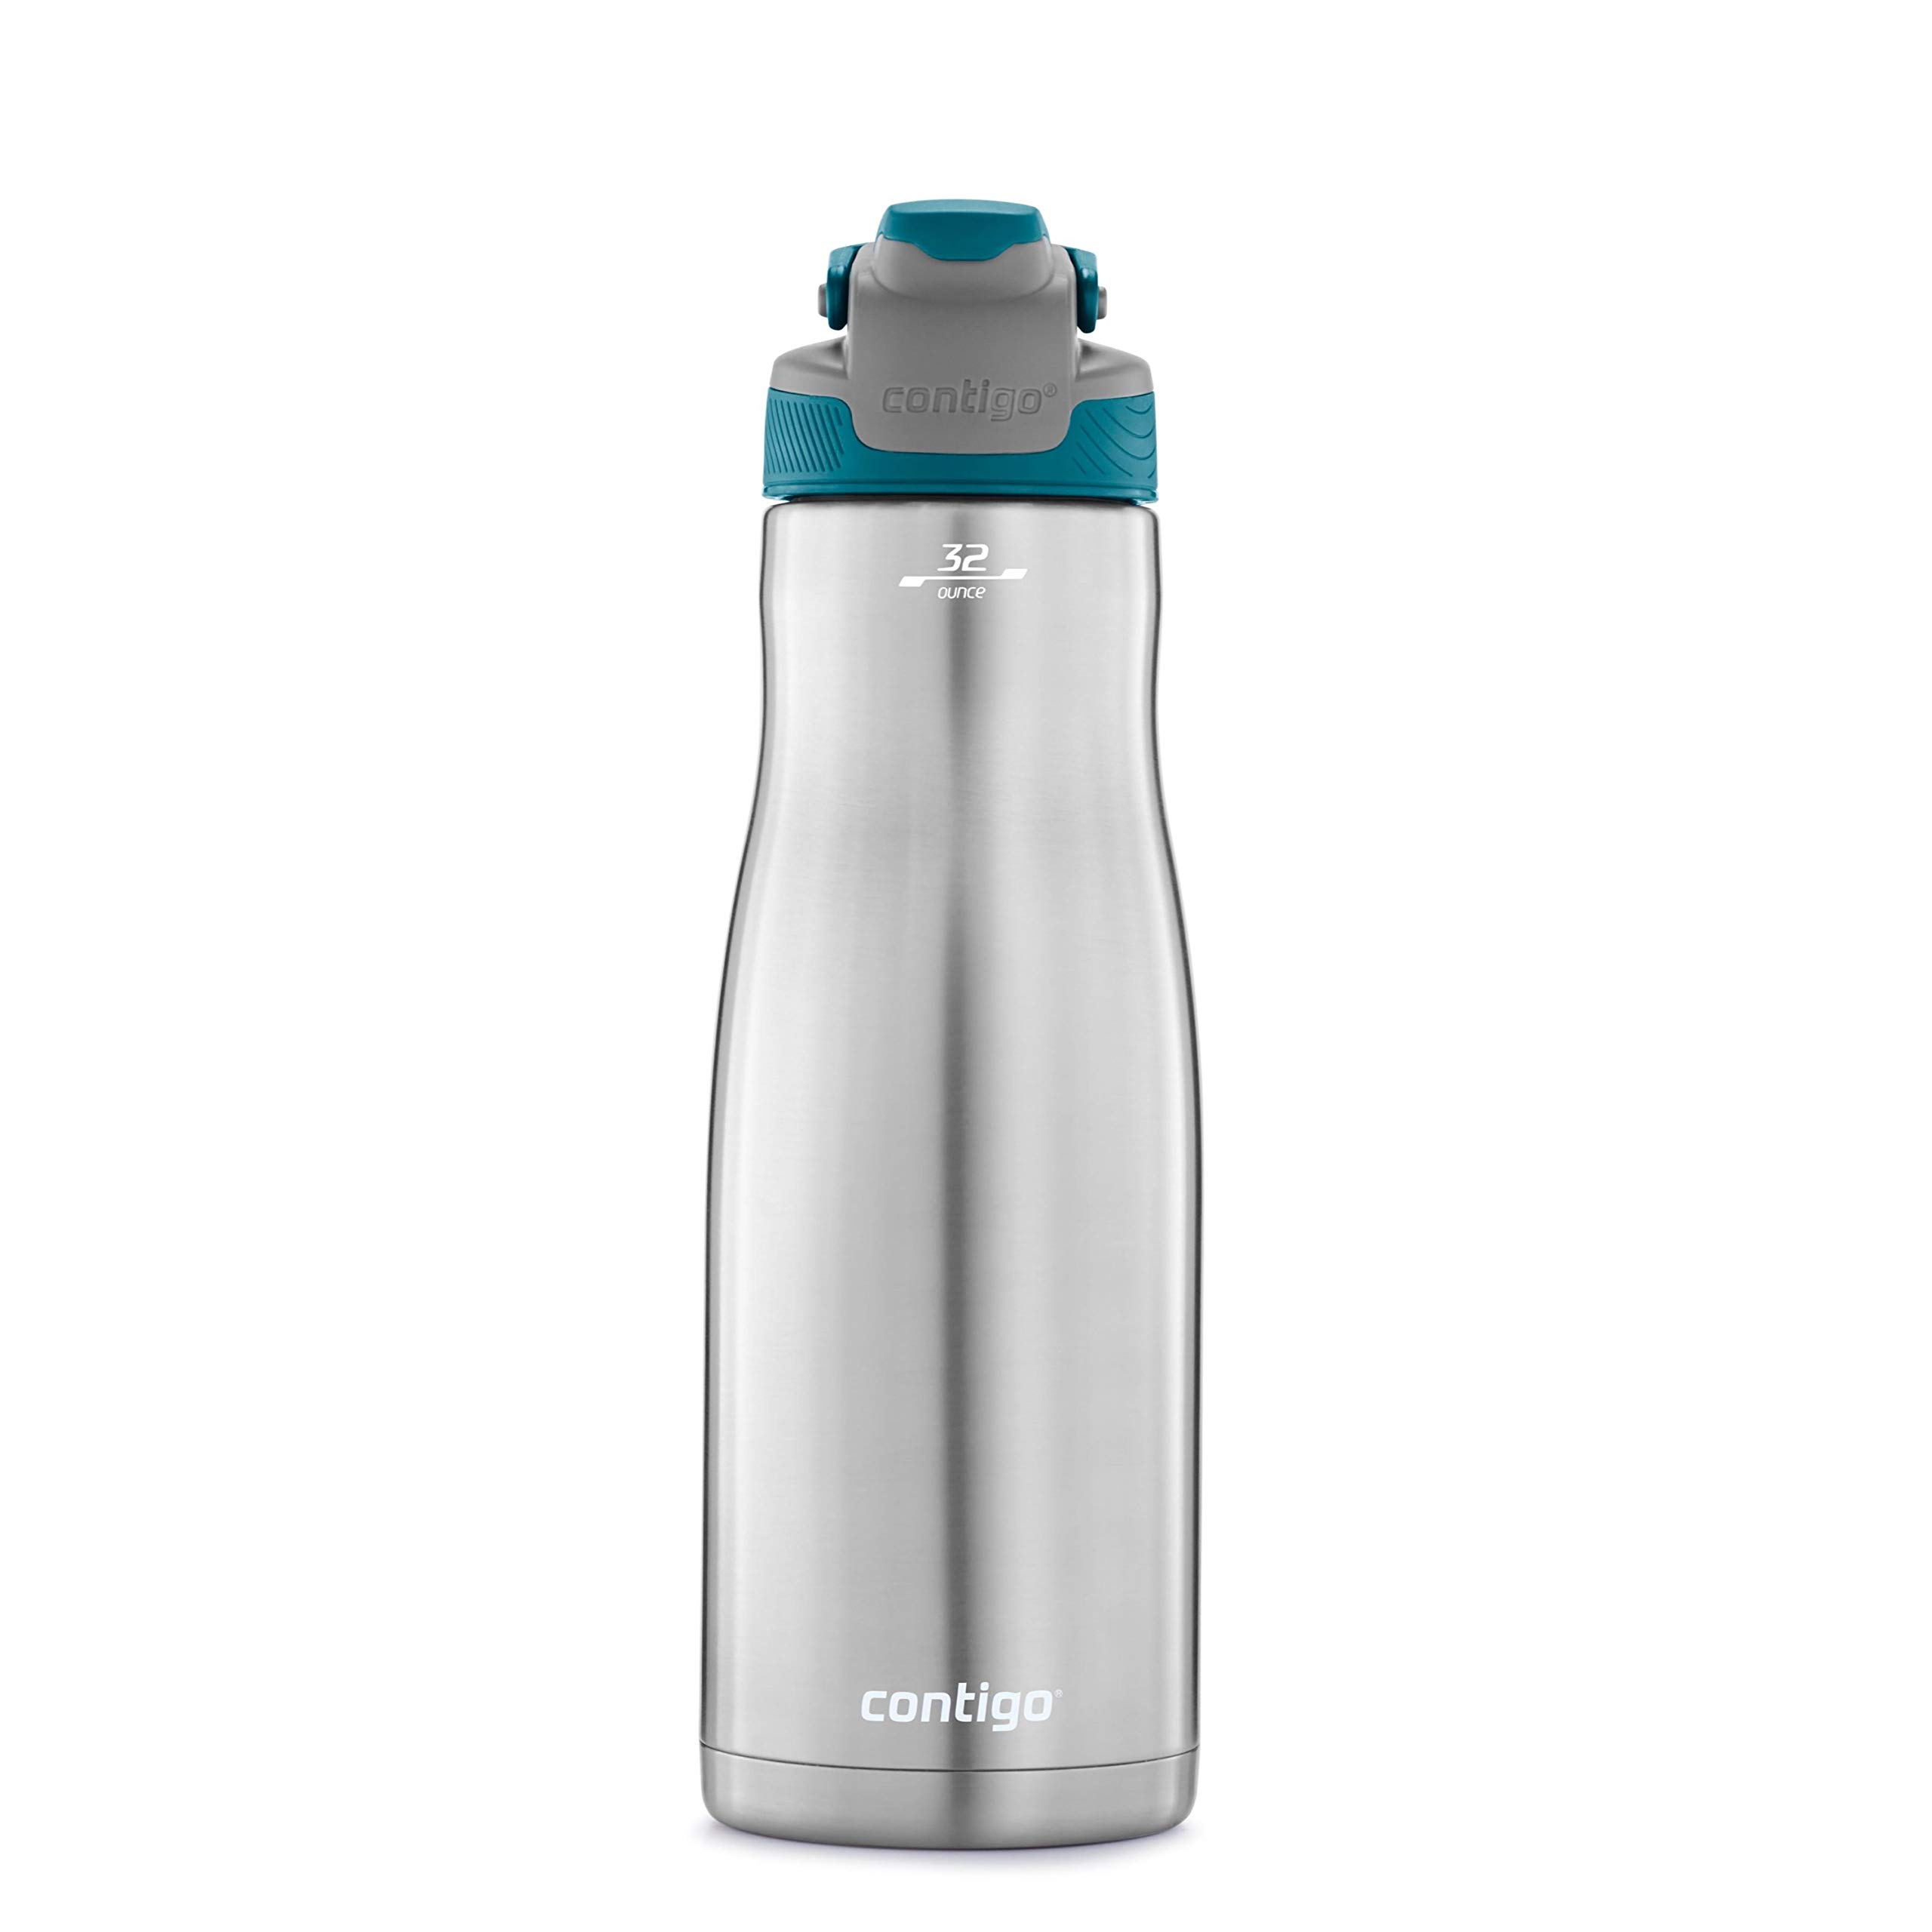 Contigo 2079447 AUTOSEAL Chill Water Bottle, 32 oz, Juniper Lid by Contigo